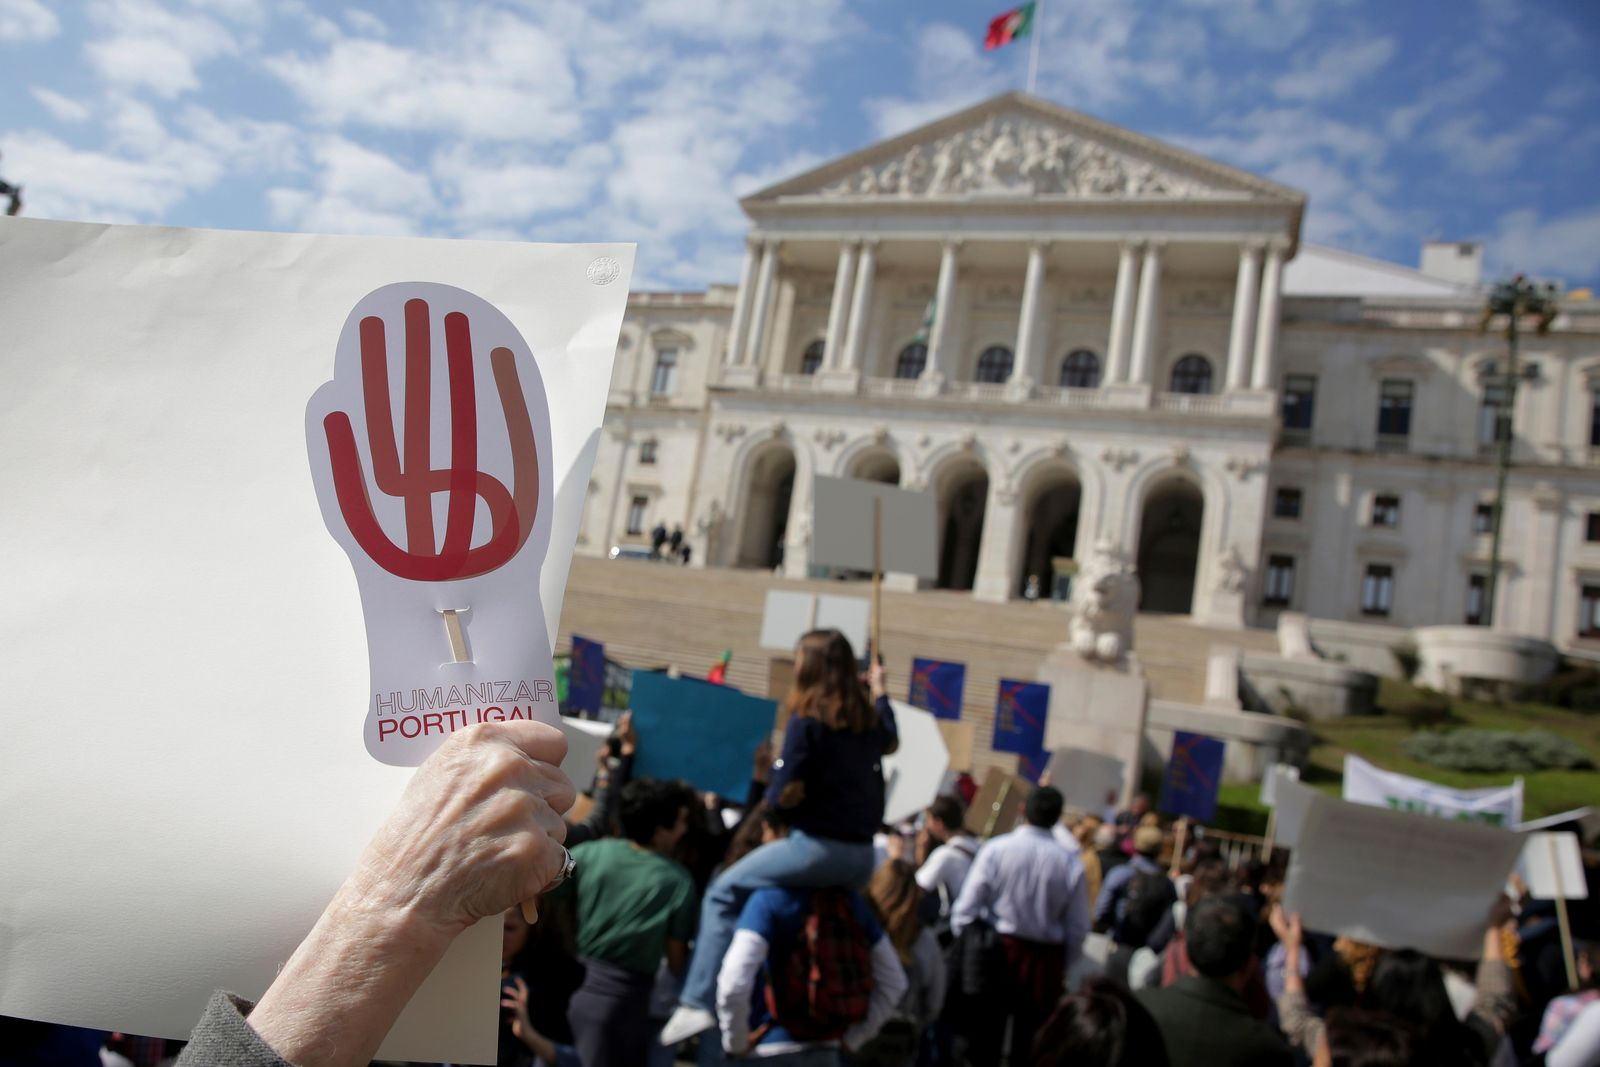 Demonstrators protest outside the Portuguese parliament in Lisbon, Thursday, Feb. 20, 2020. (AP Photo/Armando Franca)